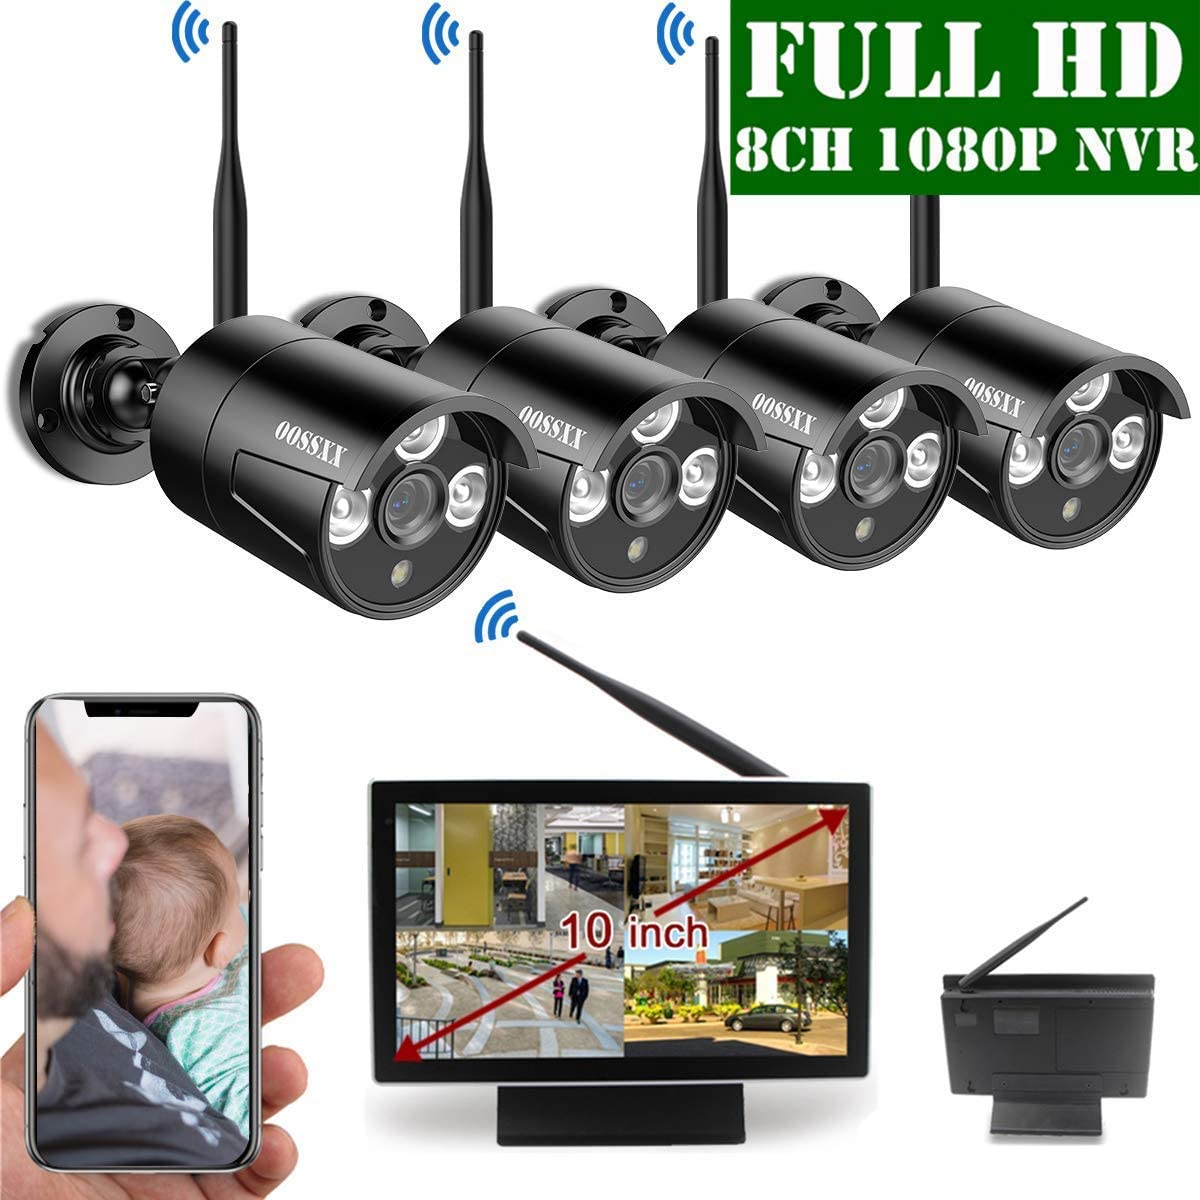 2020 Update 10 inch Screen HD 1080P 8-Channel Outdoor Wireless Security Camera System,4pcs 1080P Wireless IP67 Weatherproof IP Cameras,70FT Night Vision,P2P,App, NO Hard Drive